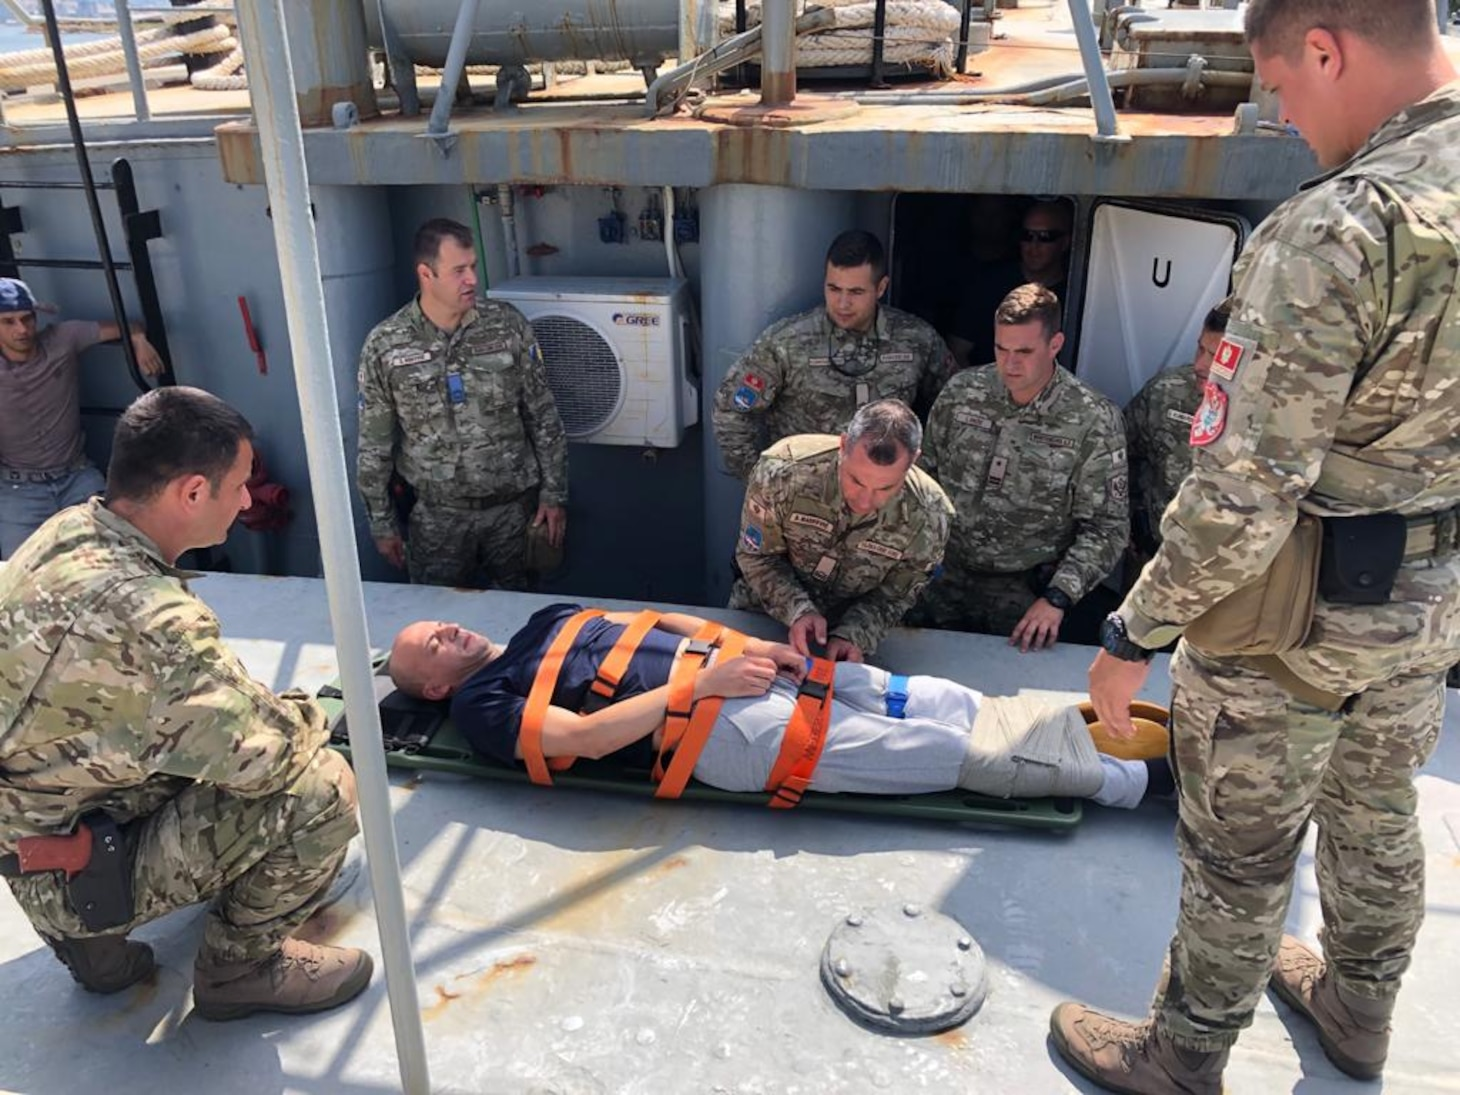 (June 11, 2021) Participating members from Albania, Croatia, Montenegro, Slovenia, and the U.S. conduct medical training during the 4th annual Adriatic Partnership Maritime Interdiction Operations and Visit, Board, Search, and Seizure Event with the Croatian Navy in Split, Croatia, June 11, 2021. U.S. Naval Forces Europe-Africa, headquartered in Naples, Italy, Conducts the full spectrum of joint and naval operations, often in concert with allied and interagency partners in order to advance U.S. national interests and security and stability in Europe and Africa.